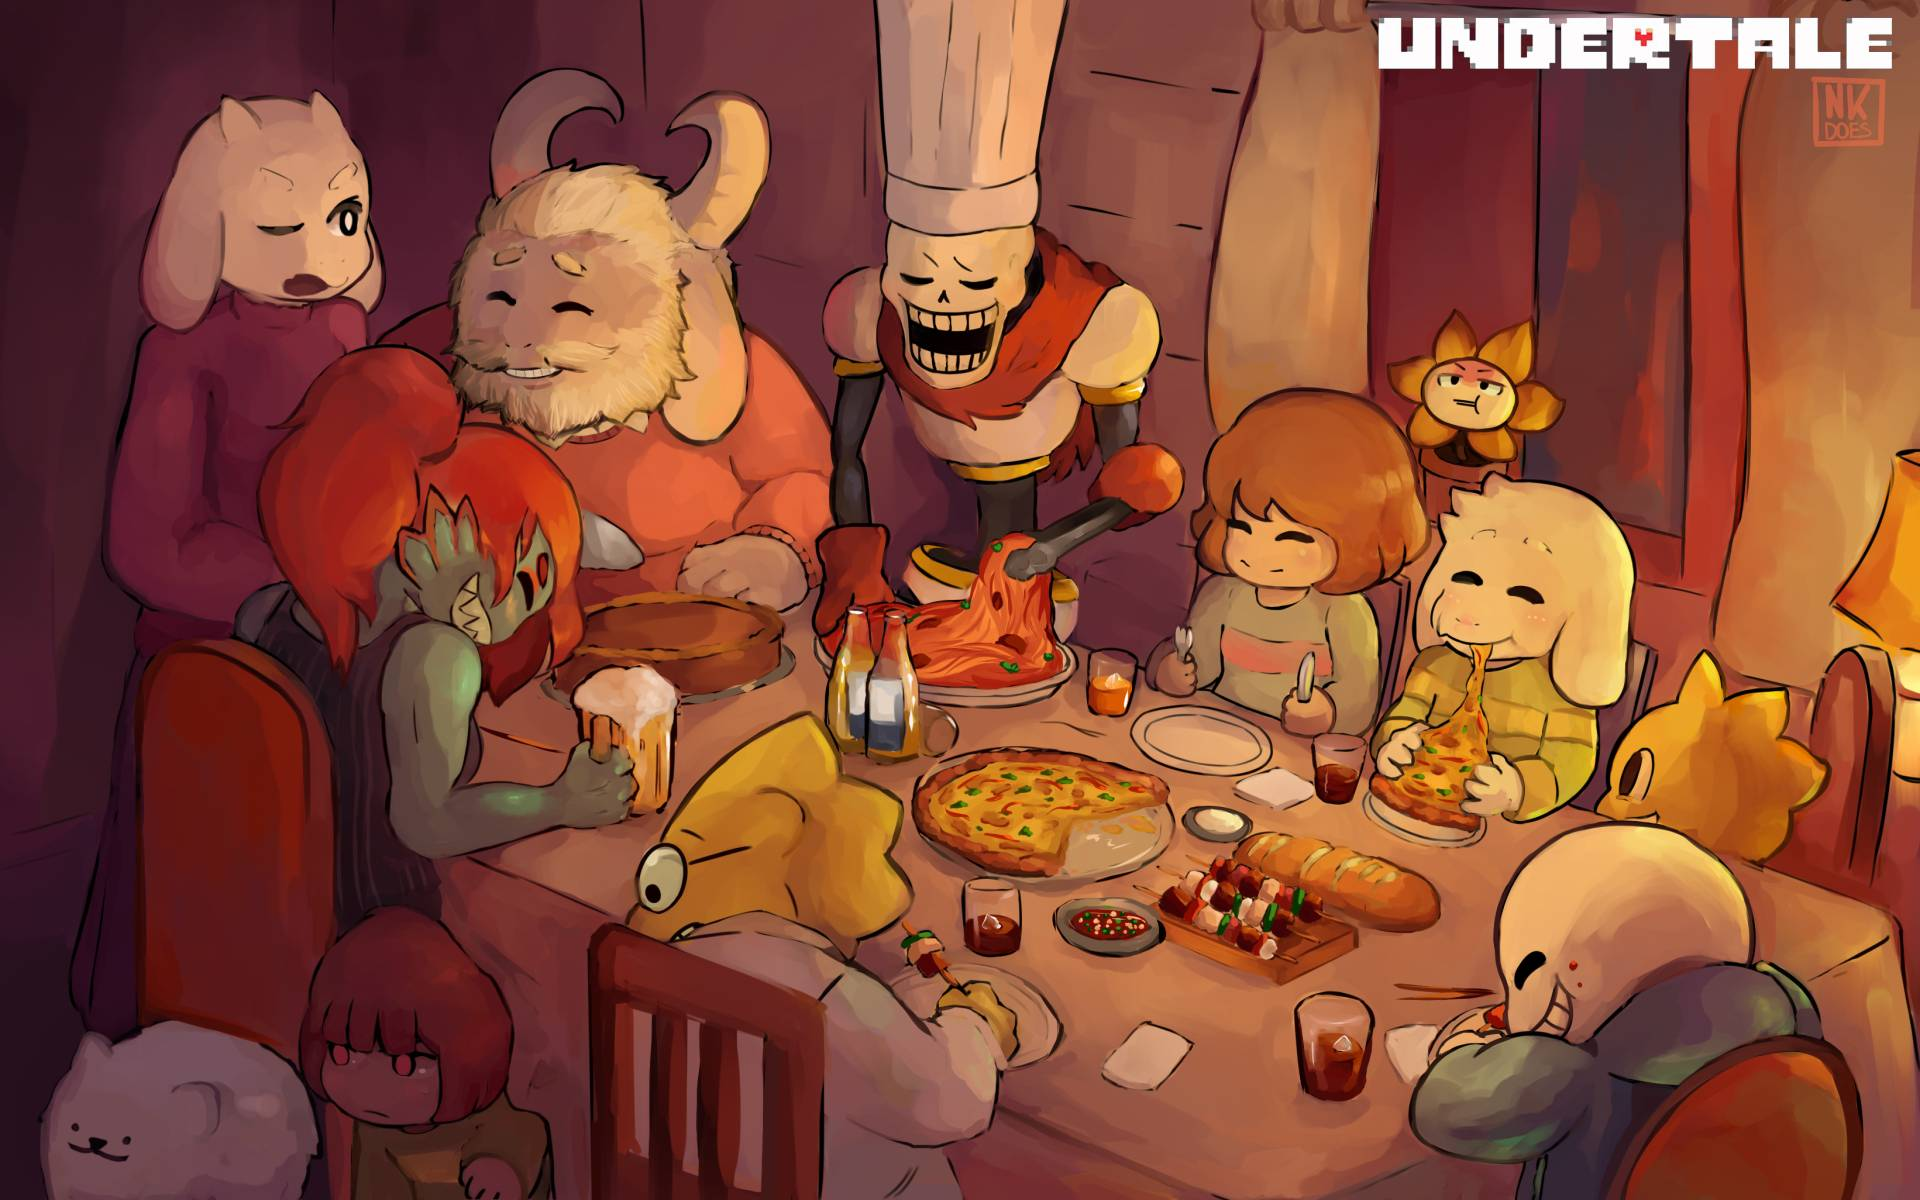 Undertale Characters Enjoying hapunan Together